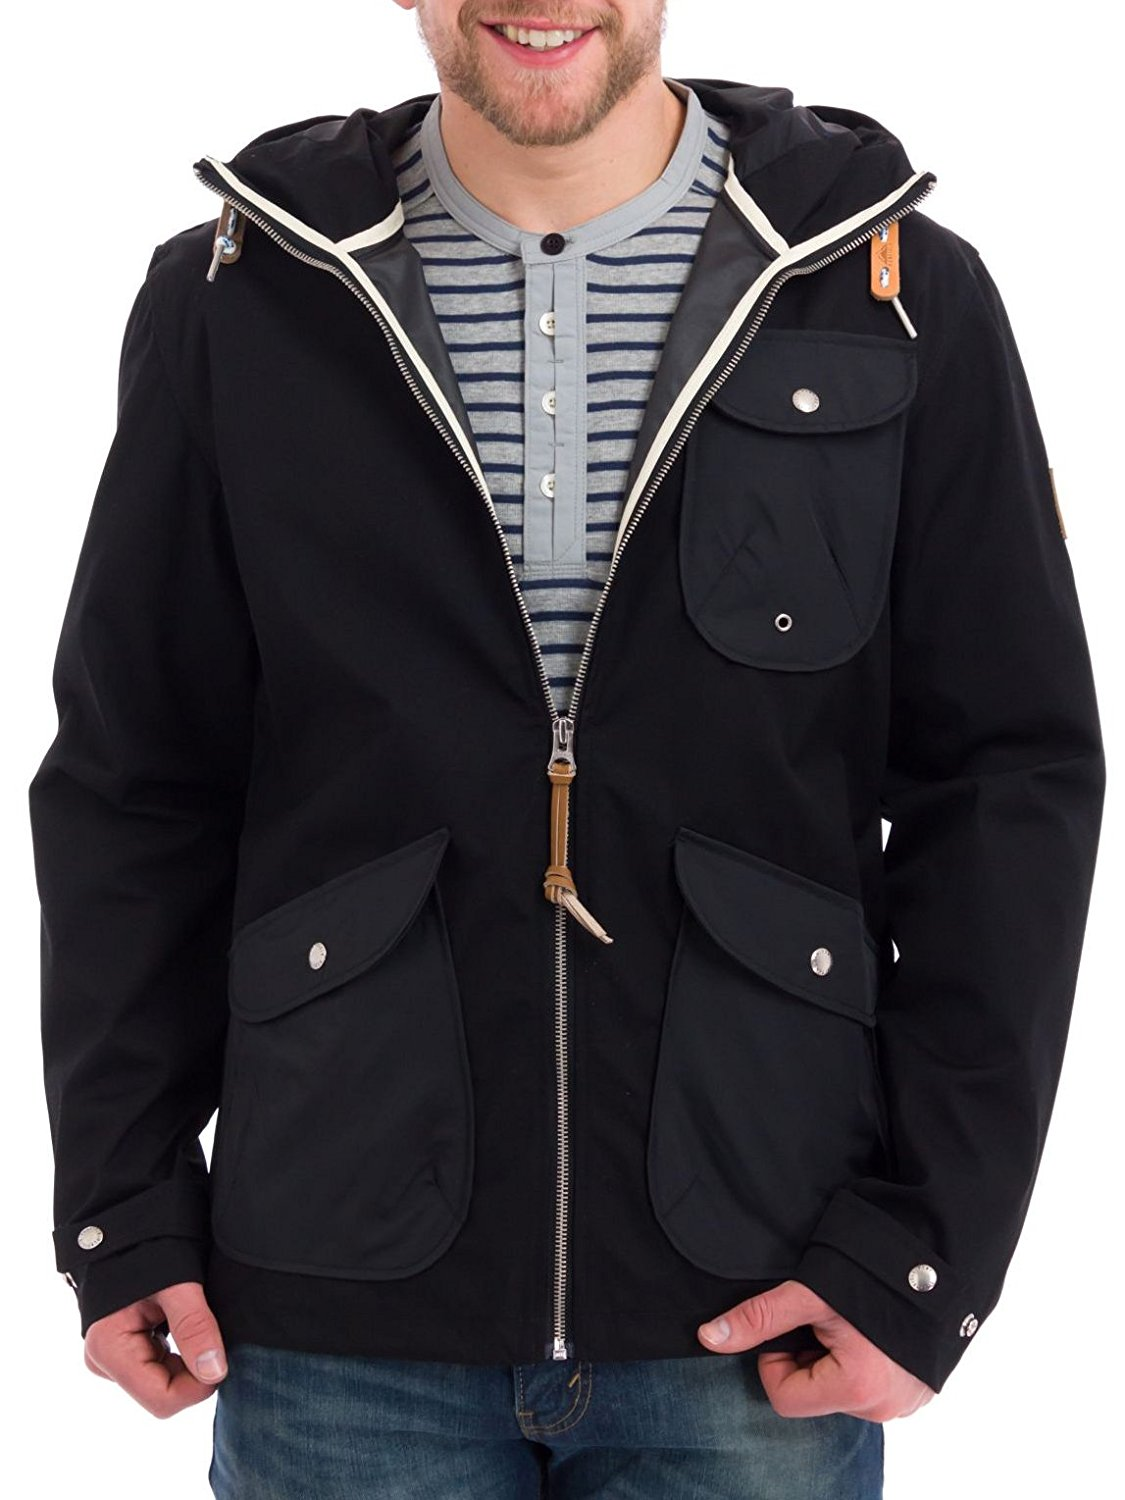 235d9bb67 Cheap Penfield Jacket, find Penfield Jacket deals on line at Alibaba.com